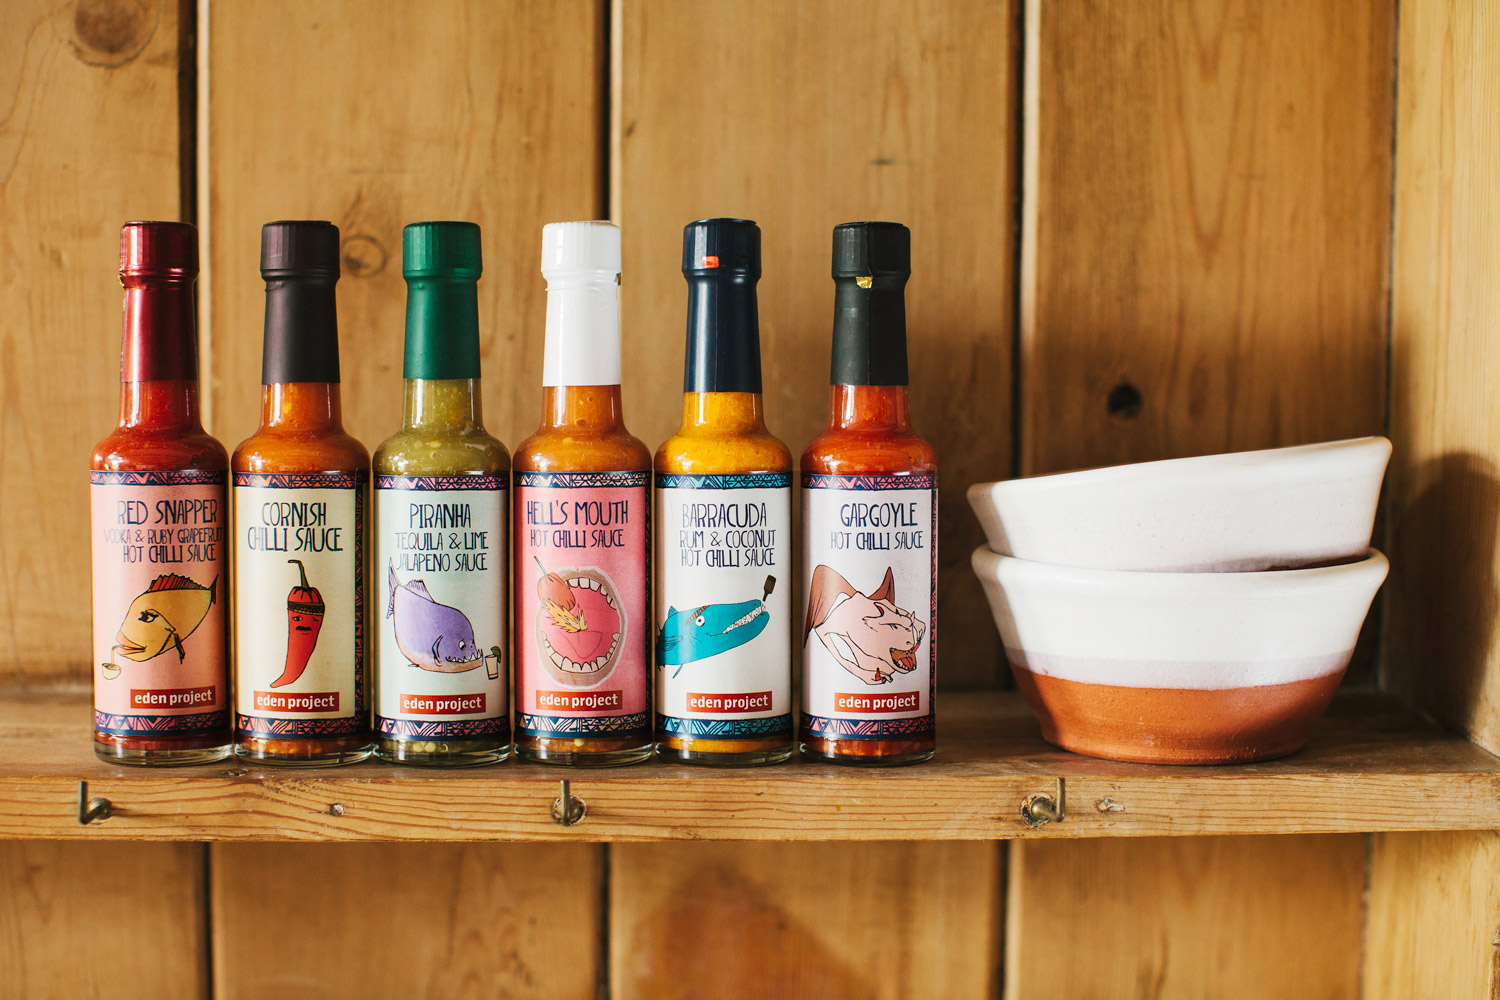 creative-packaging-eden-project-chilli-sauces-design-illustration-pic3